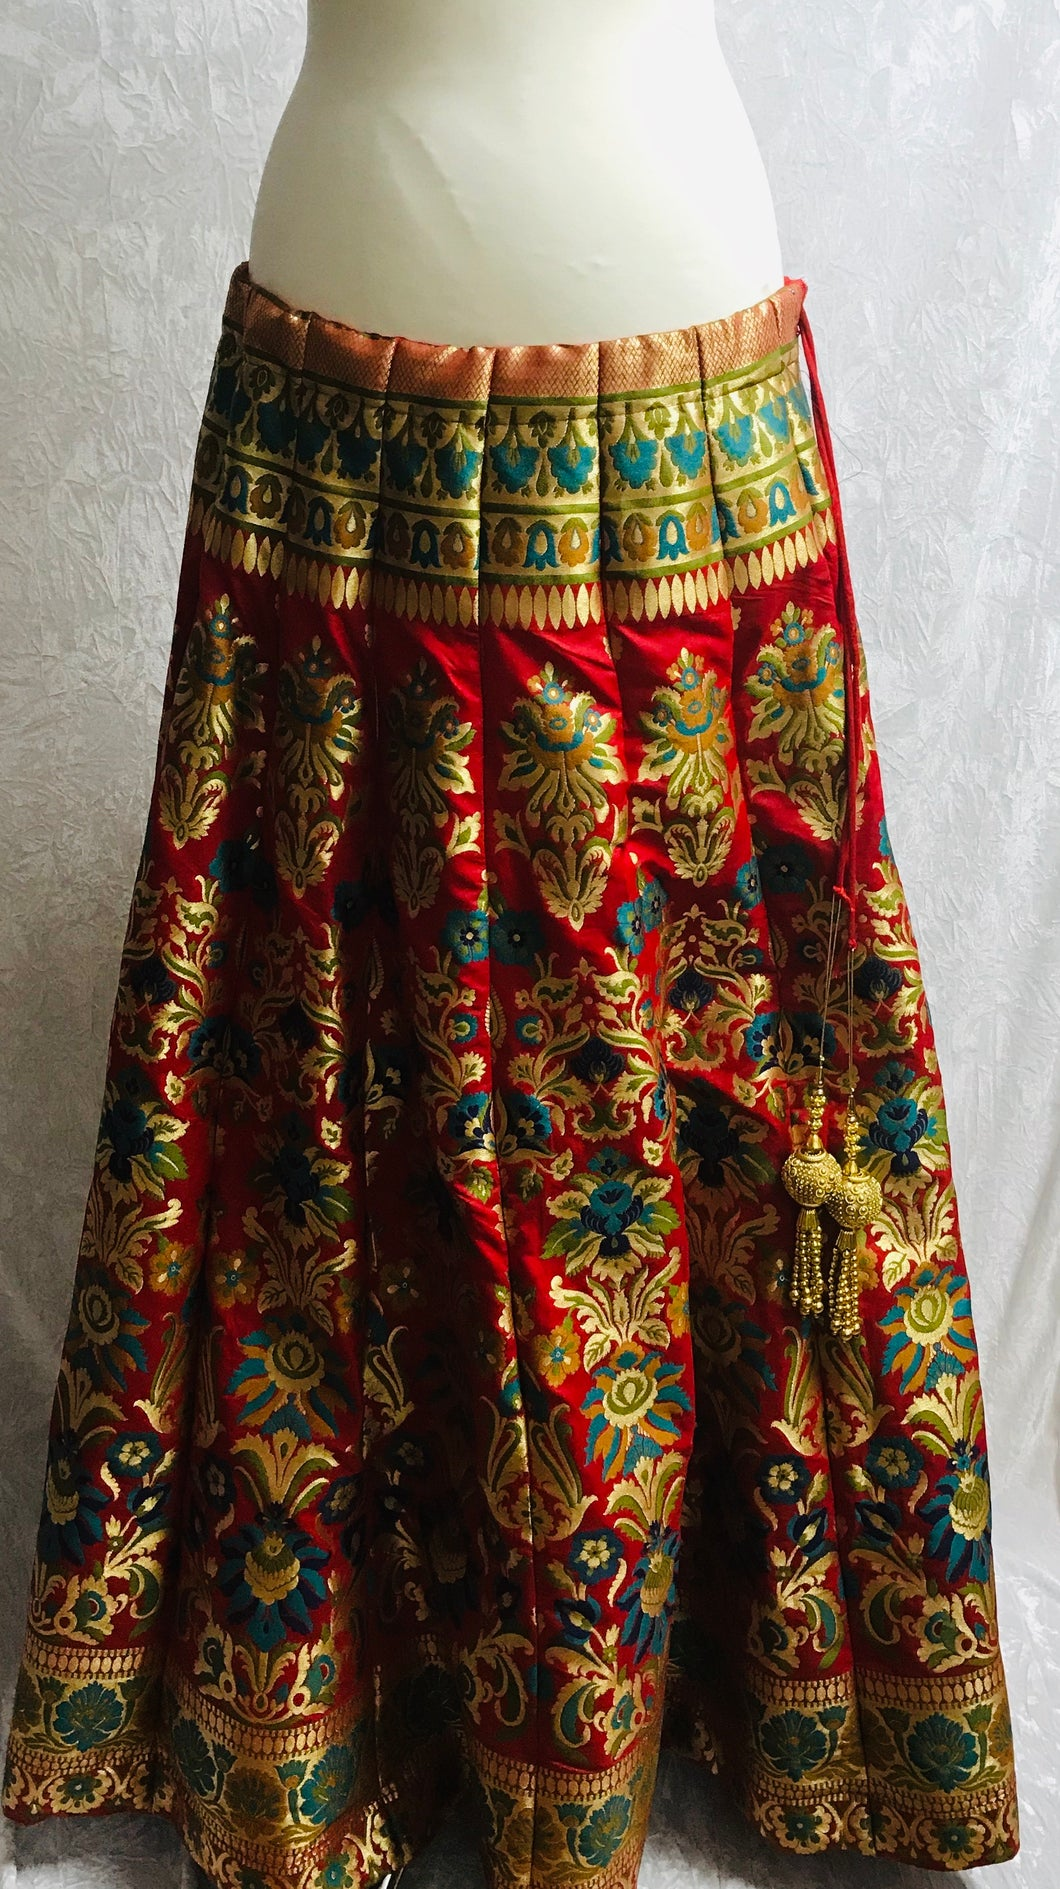 Red and Gold Brocade Lengha CanCan skirt SP166-1 midtex